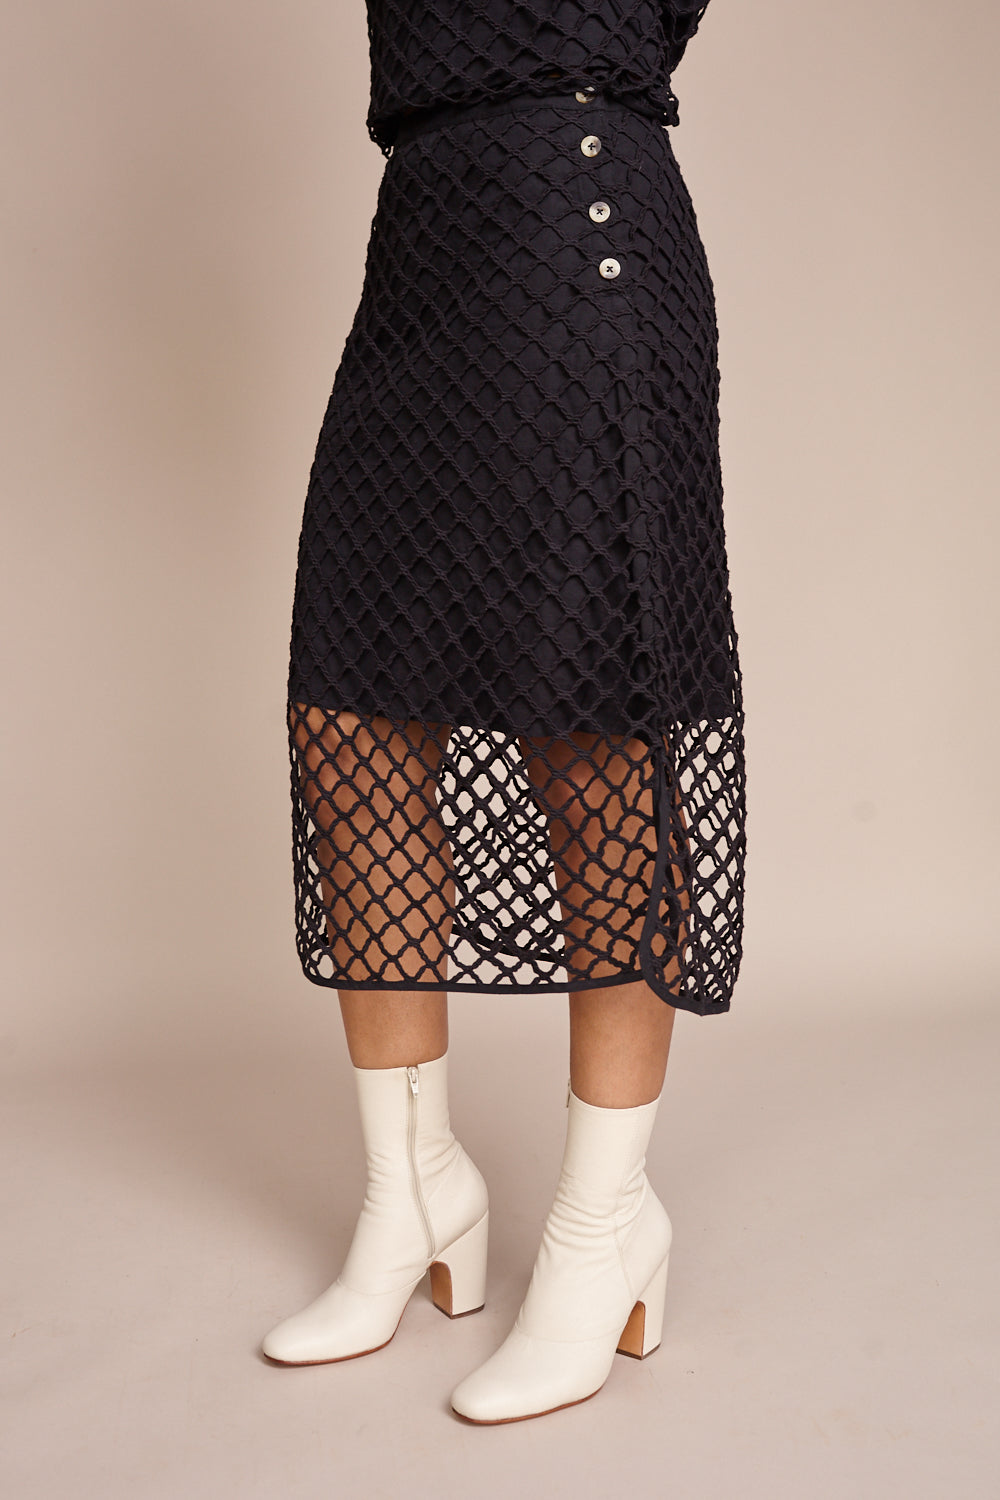 No.6 Carla Macrame Skirt in Black - Vert & Vogue